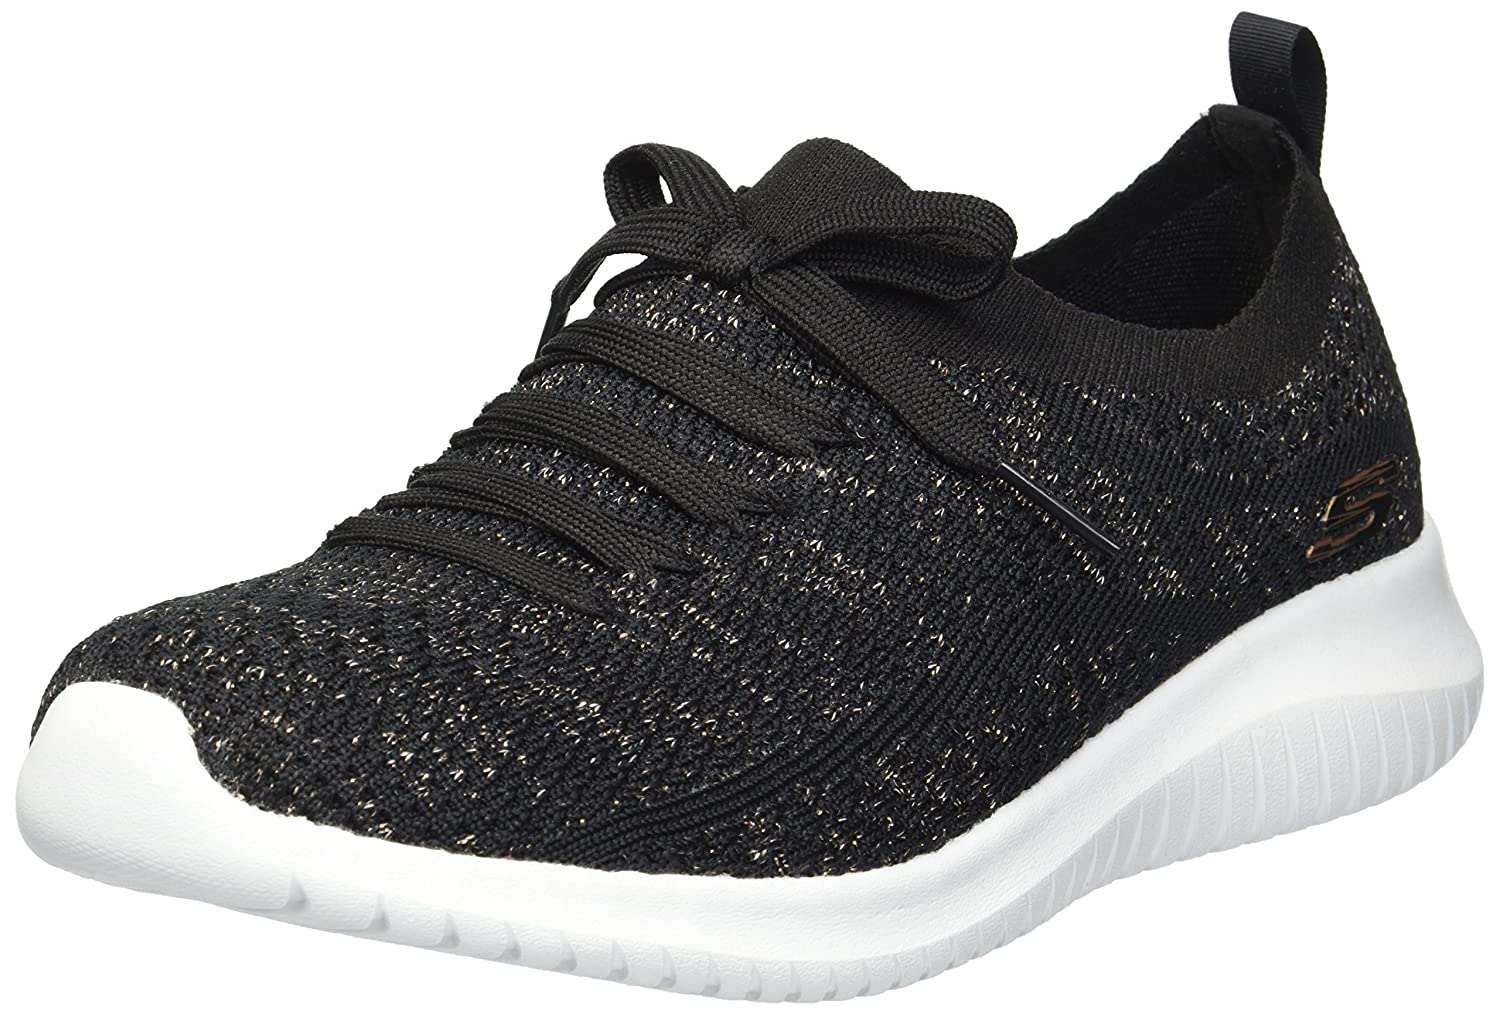 Skechers Women's Ultra Flex Salutations Sneaker B074BY5ZJP 9.5 B(M) US|Black/Gold